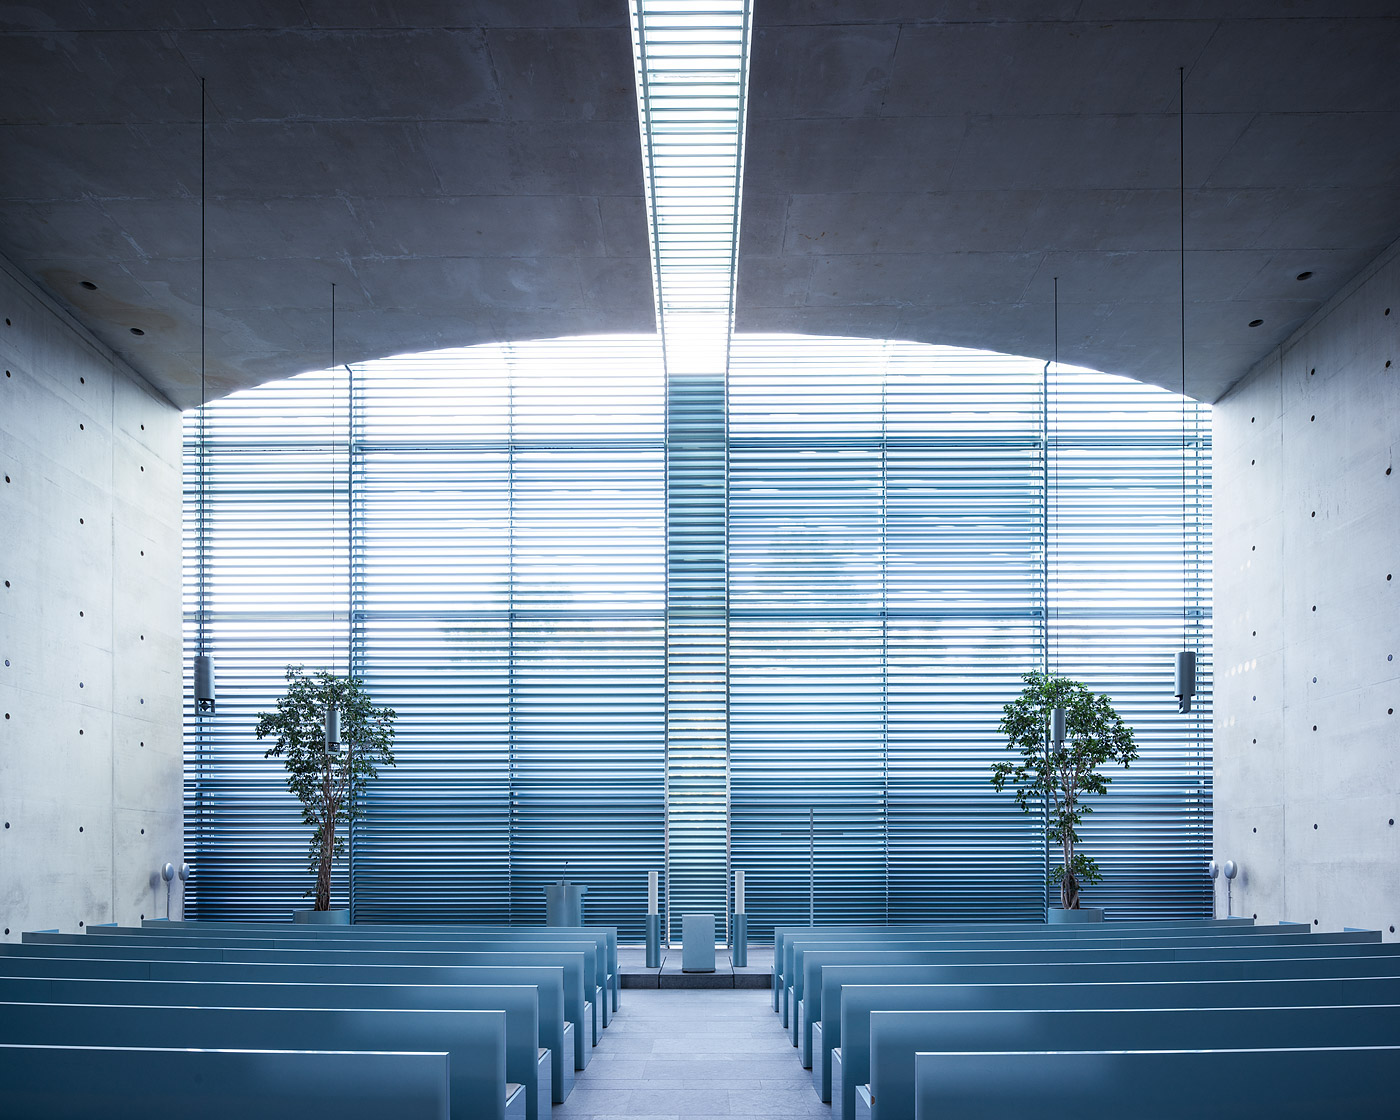 Berlin Interiors Architecture Photography